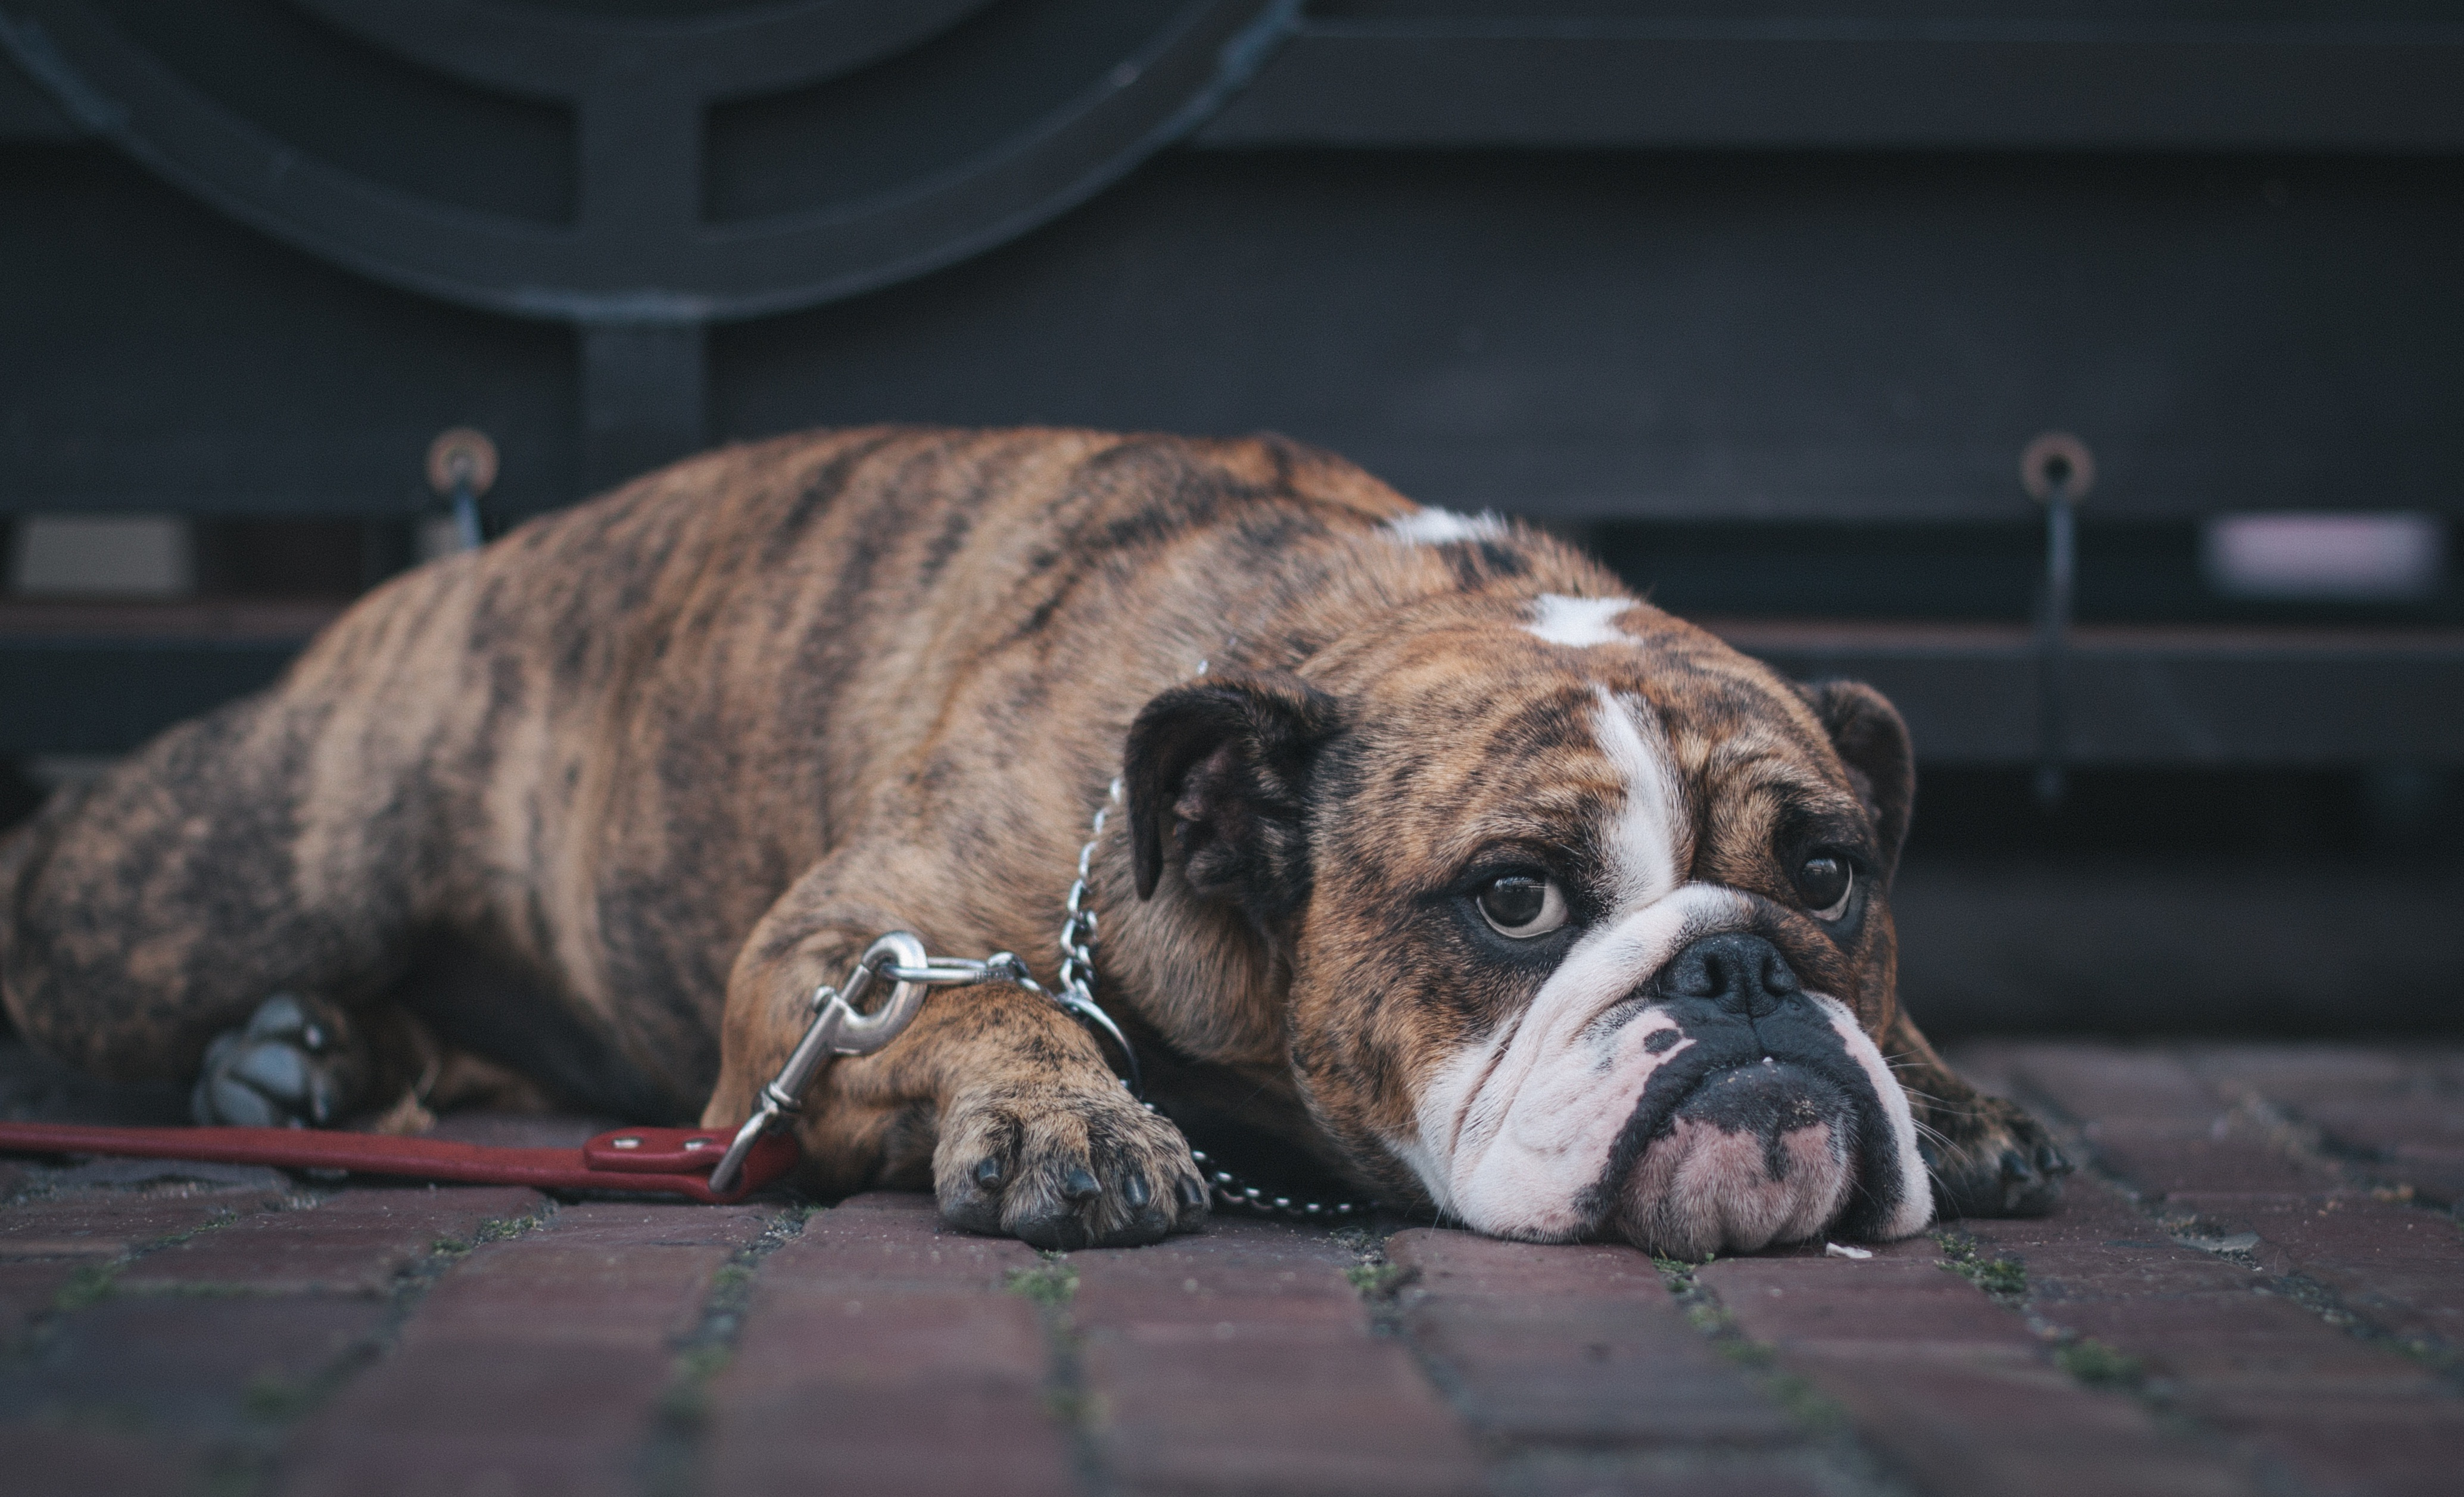 113057 download wallpaper Animals, English Bulldog, Dog, Muzzle, To Lie Down, Lie screensavers and pictures for free